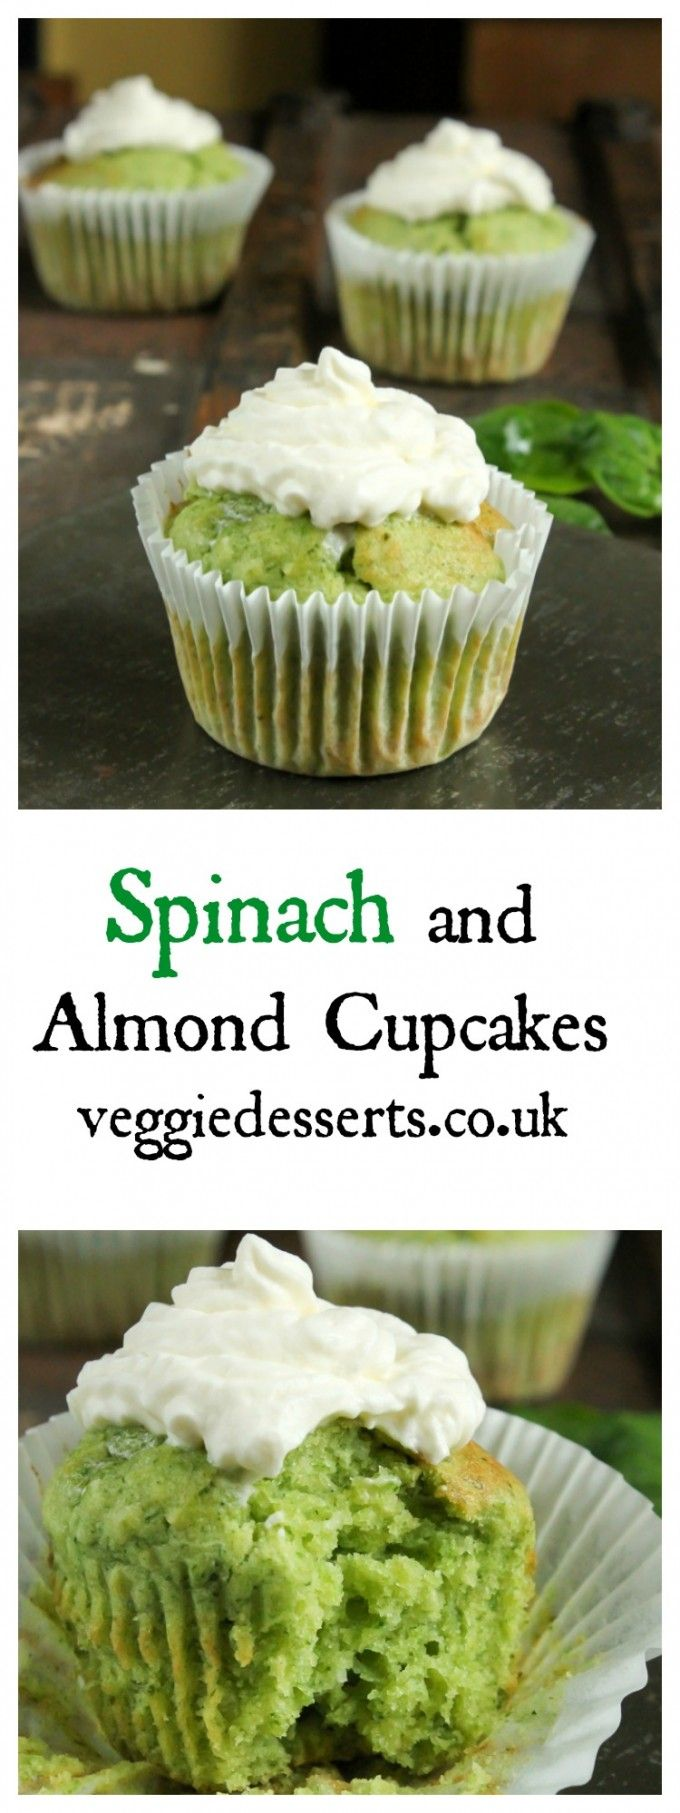 Spinach Almond Cupcakes | Veggie Desserts Blog  In these spinach and almond cupcakes, the flavour of spinach fades away beneath the almond. But it leaves a wonderfully green colour to the sponge!  veggiedesserts.co.uk